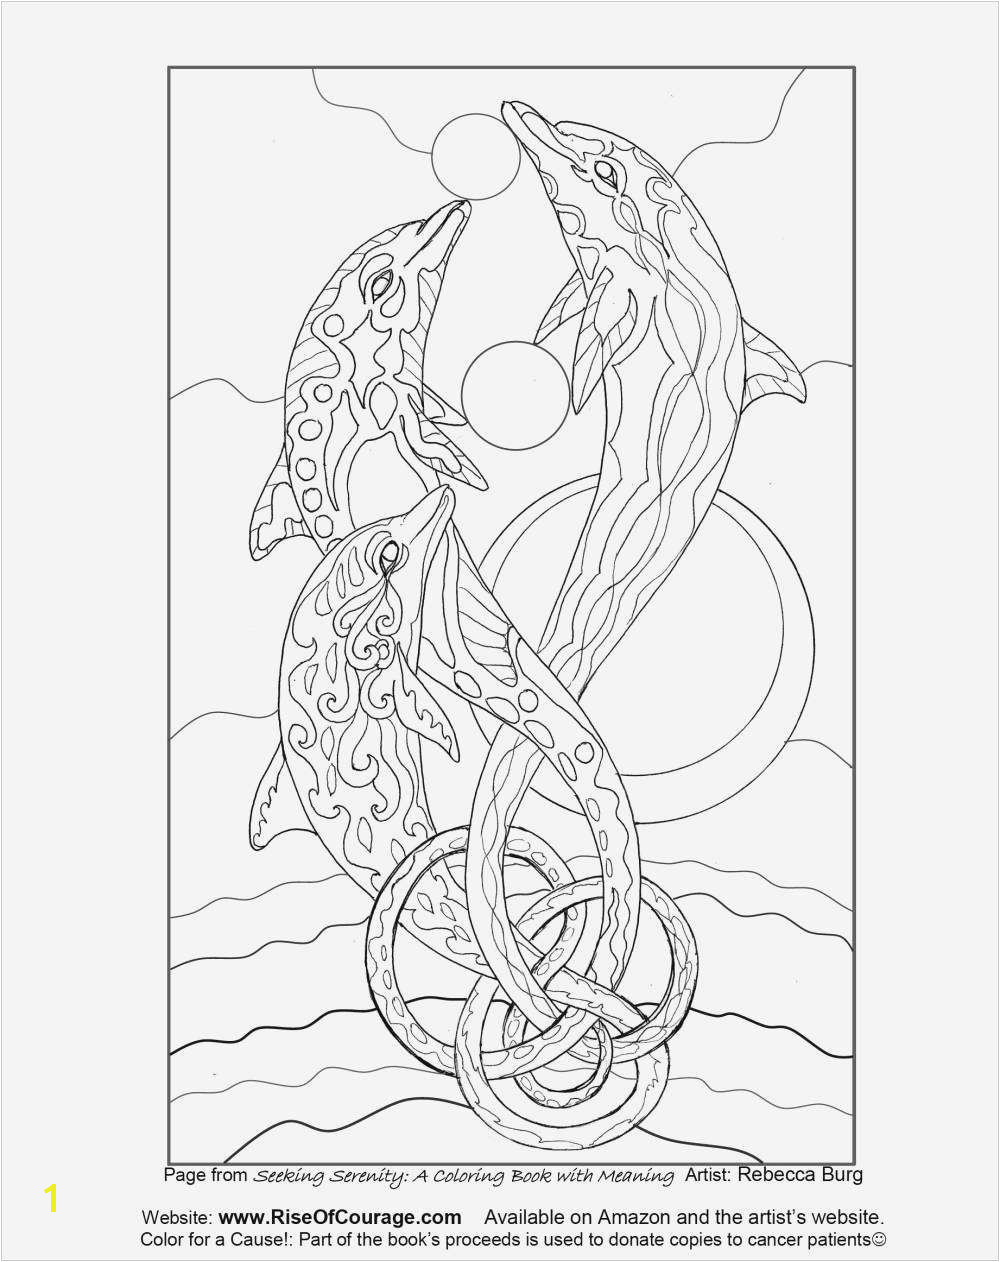 Coloring Pages for Kids the Ten mandments Beautiful Spiderman Coloring Pages New 0 0d Spiderman Rituals